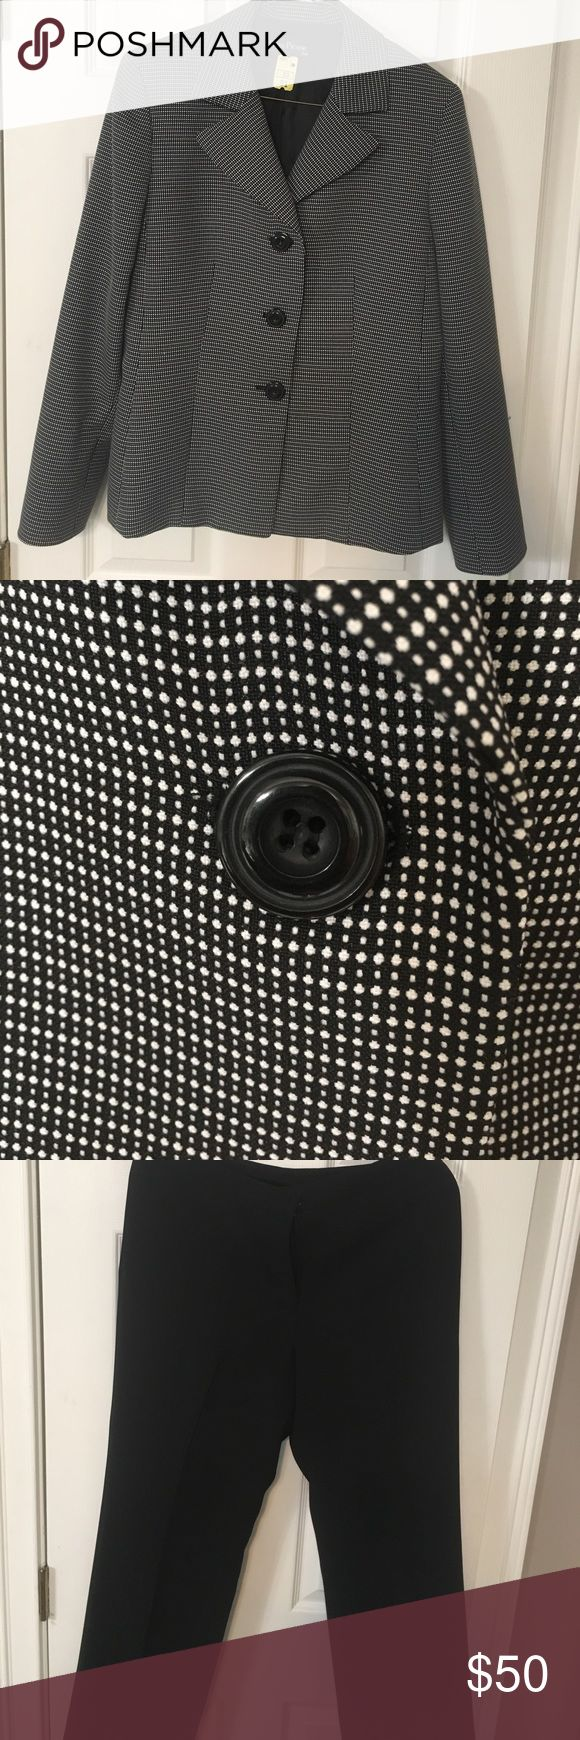 Evan-Picone Suit two piece Evan-Picone two piece suit like new. Black pants with side slash pockets, flat front.  Great addition to your work wardrobe! Evan Picone Other